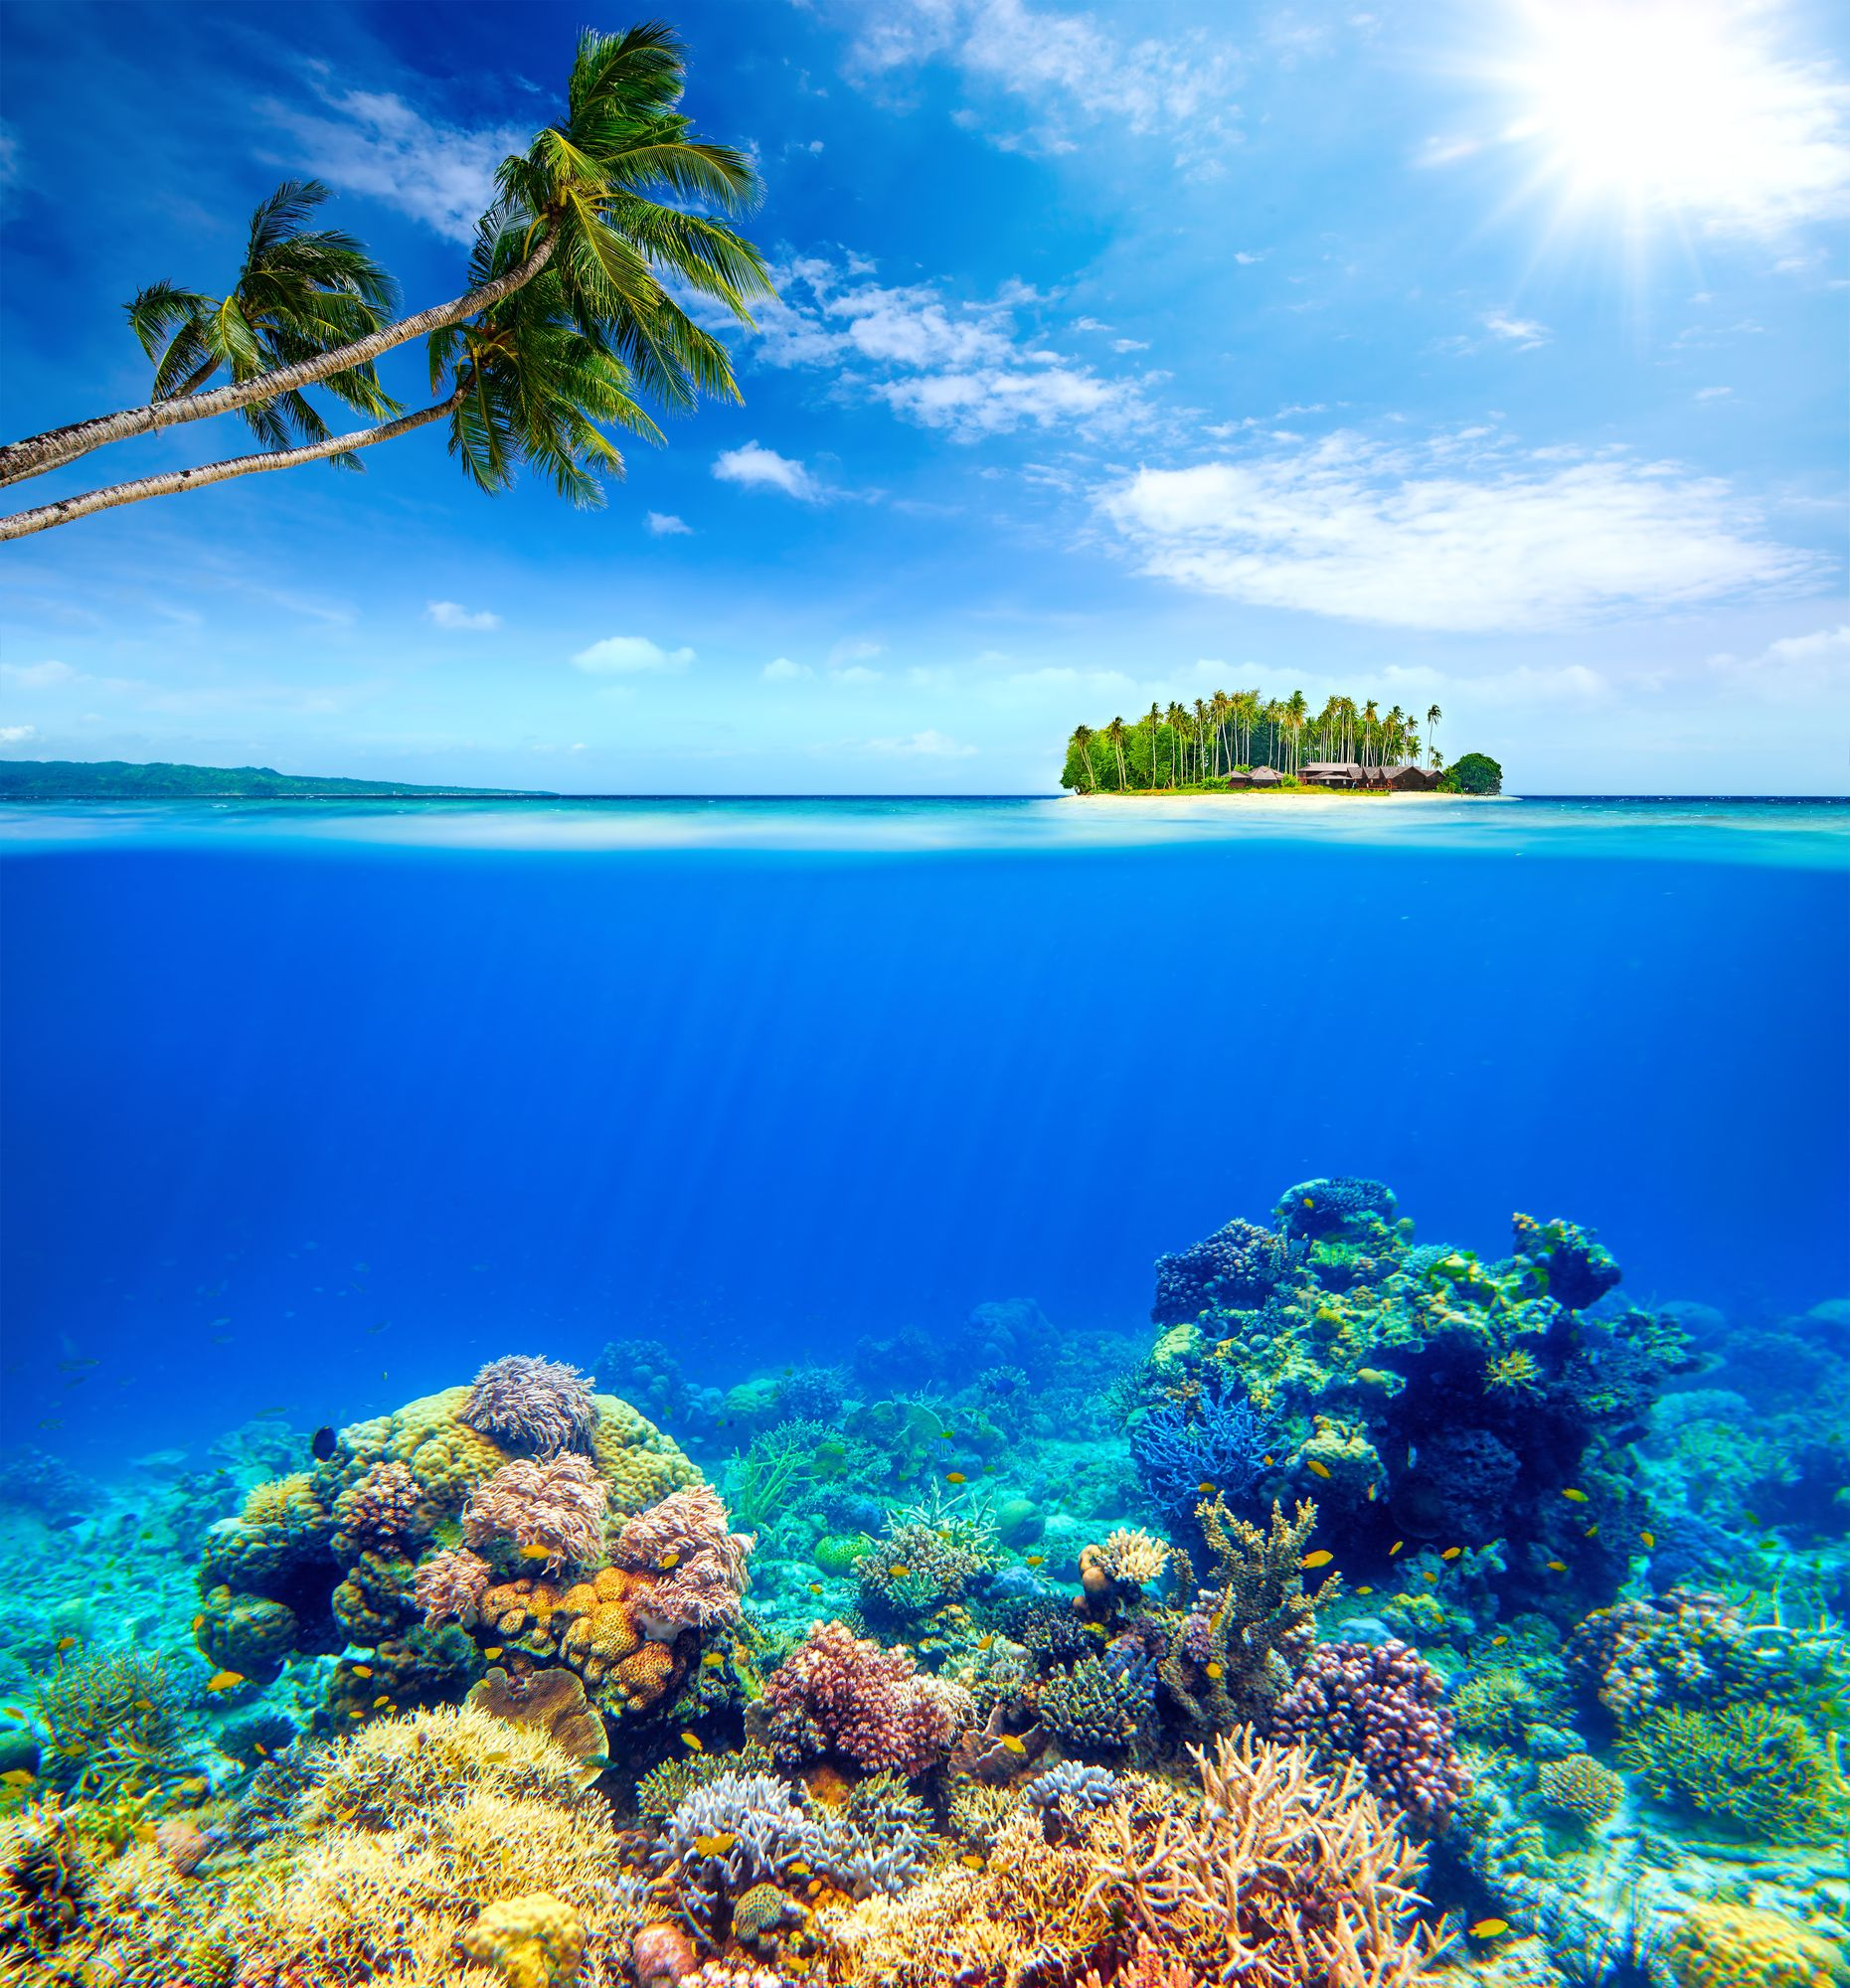 Beach Island: Beauty Above And Below Water #beauty #coral #island #beach